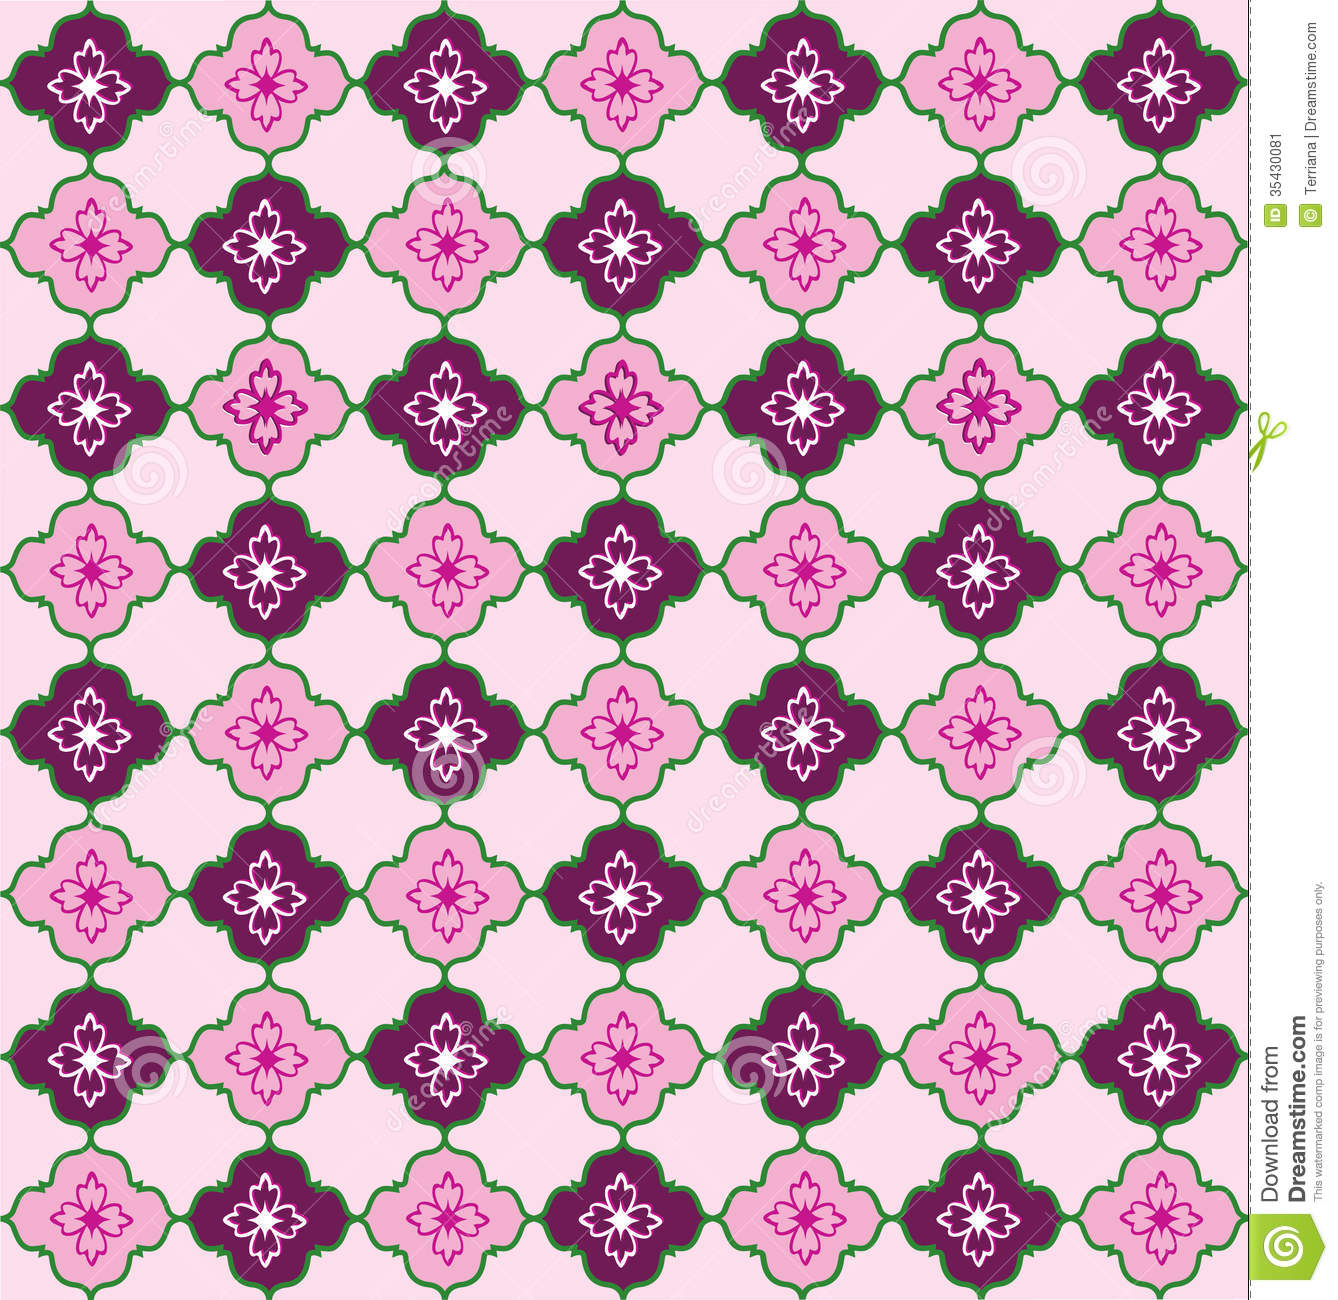 Chinese Flower Patterns And Designs Flower ornamental pattern over